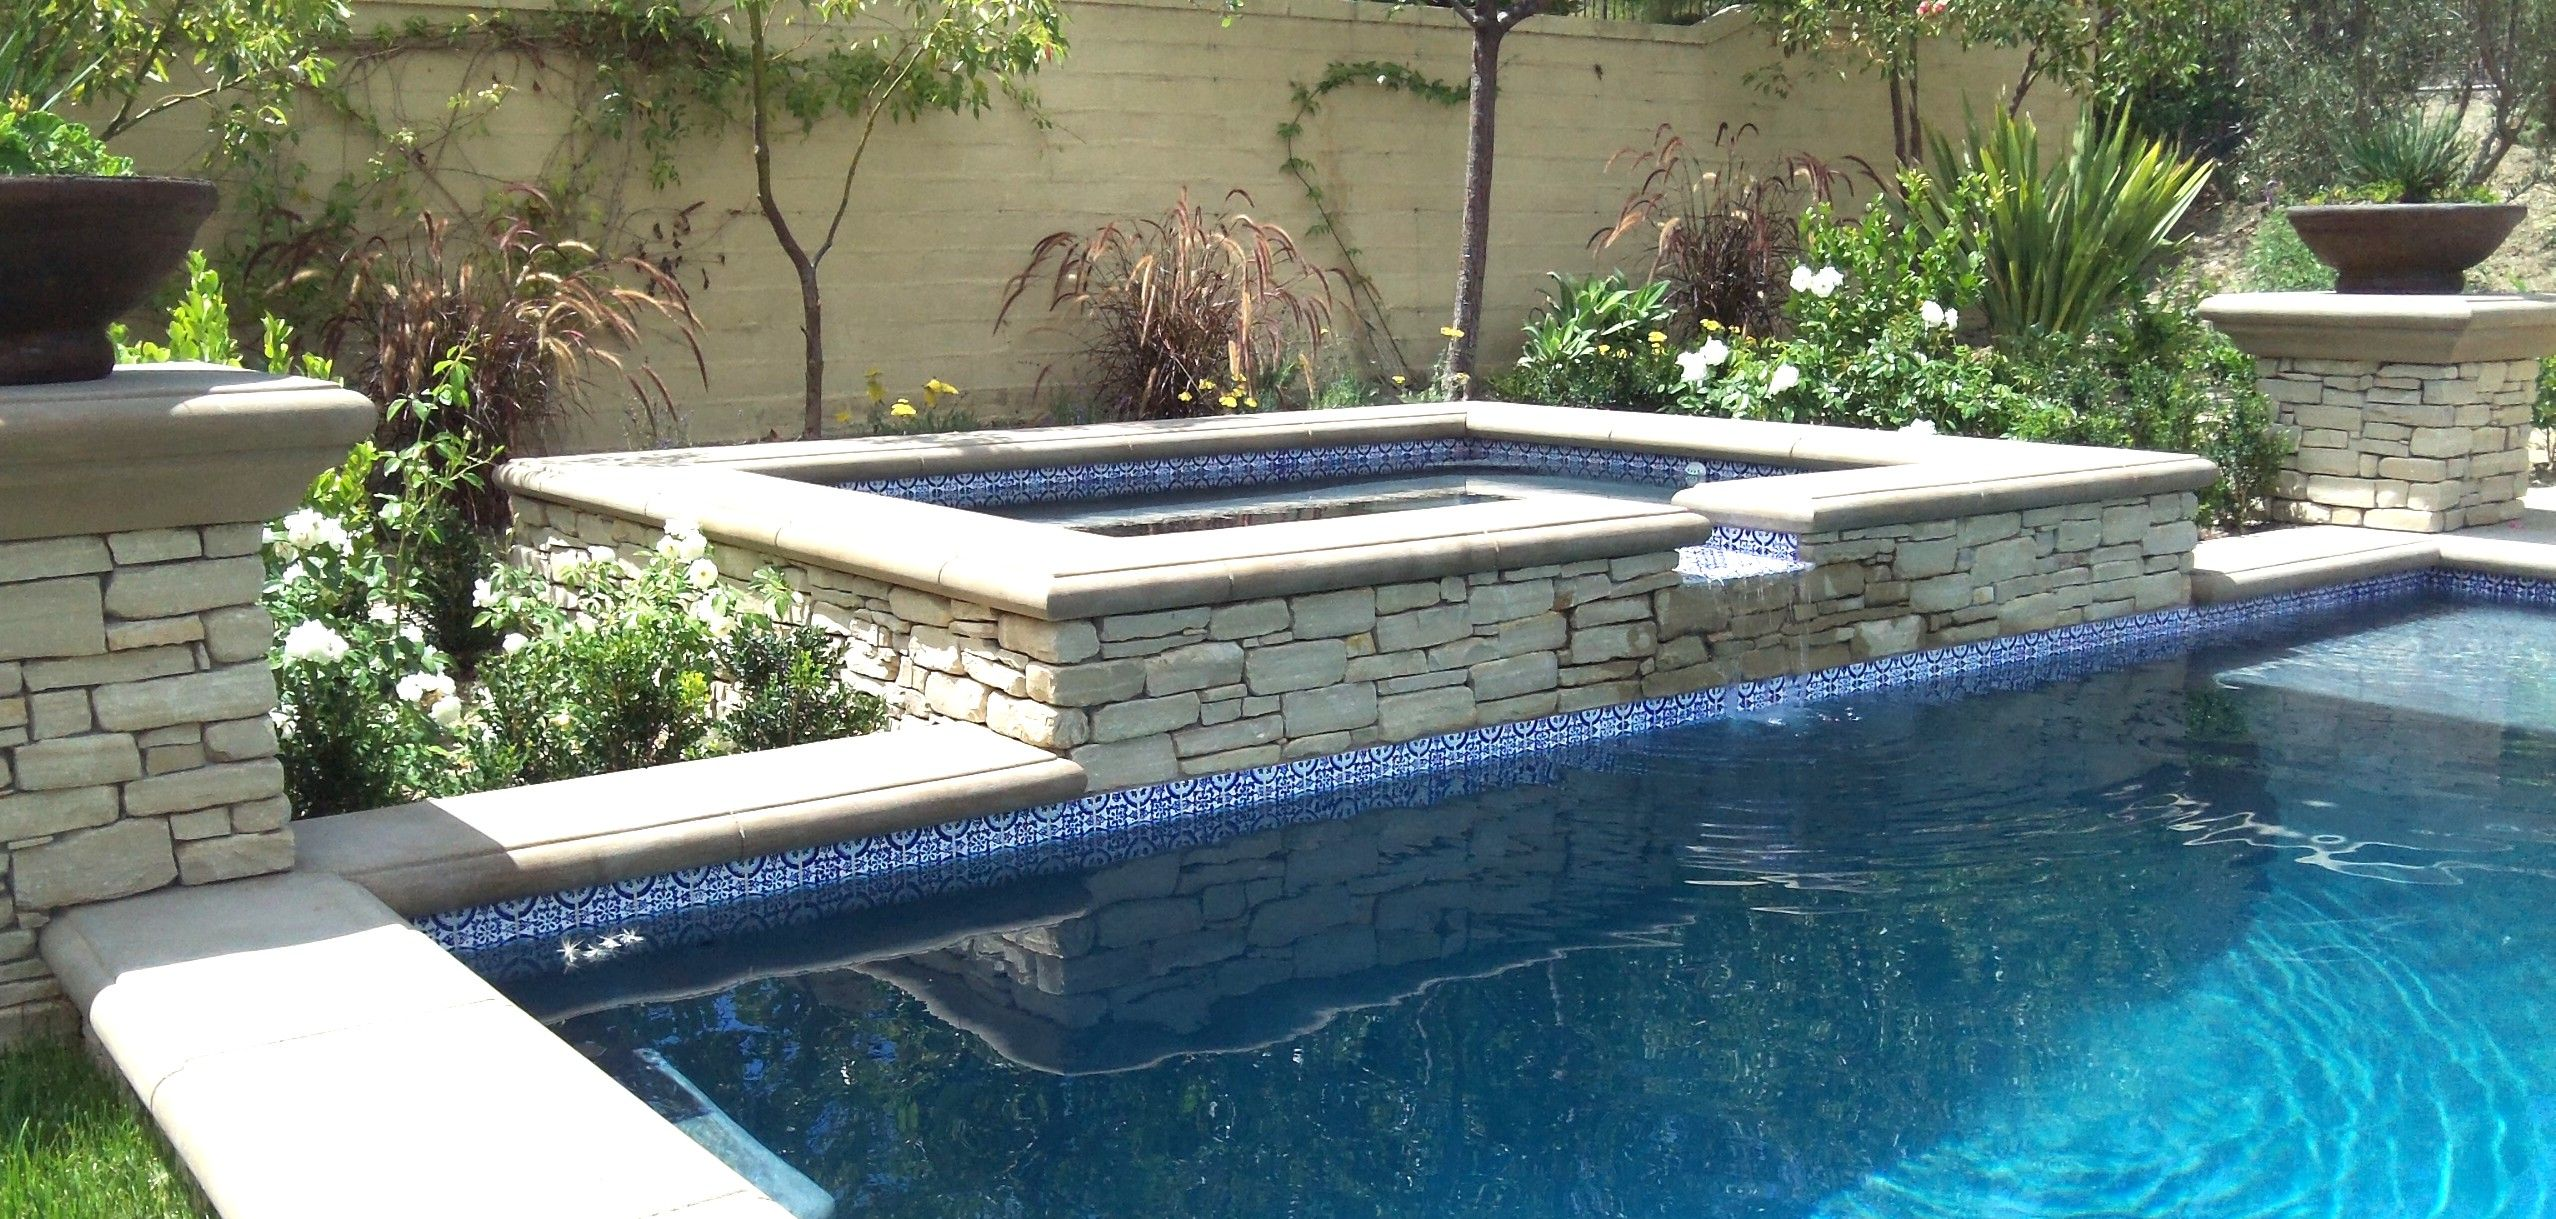 pool tile designs pool water fountain design ideas small swimming pool fountain design - Rectangle Pool With Water Feature